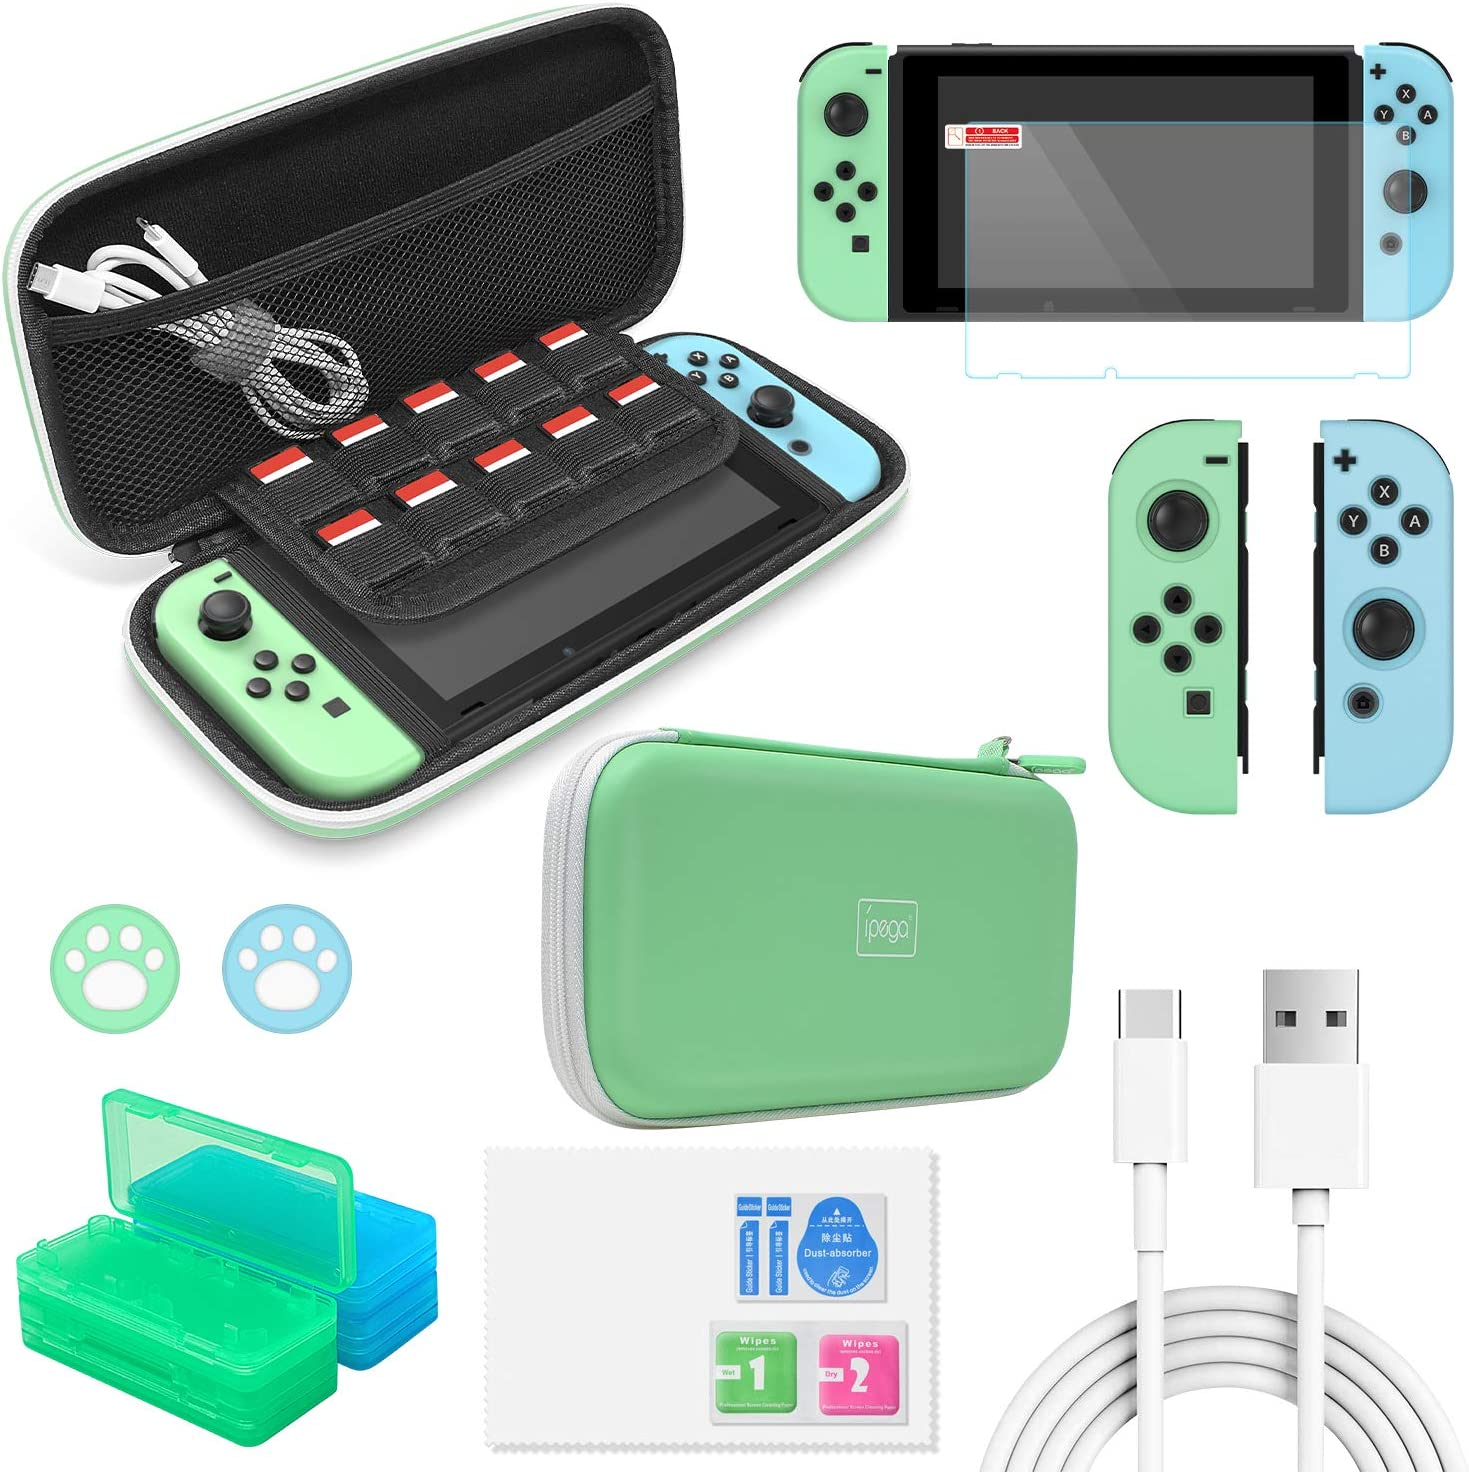 Accessories Kit Bundle for Switch,12 in 1 Essential Protection Kits with Carrying Case, Game Storage Case, Screen Protector, Silicone Cover Skin for Joy Con & Type C Charging Cable for Nintendo Switch: MP3 Players & Accessories